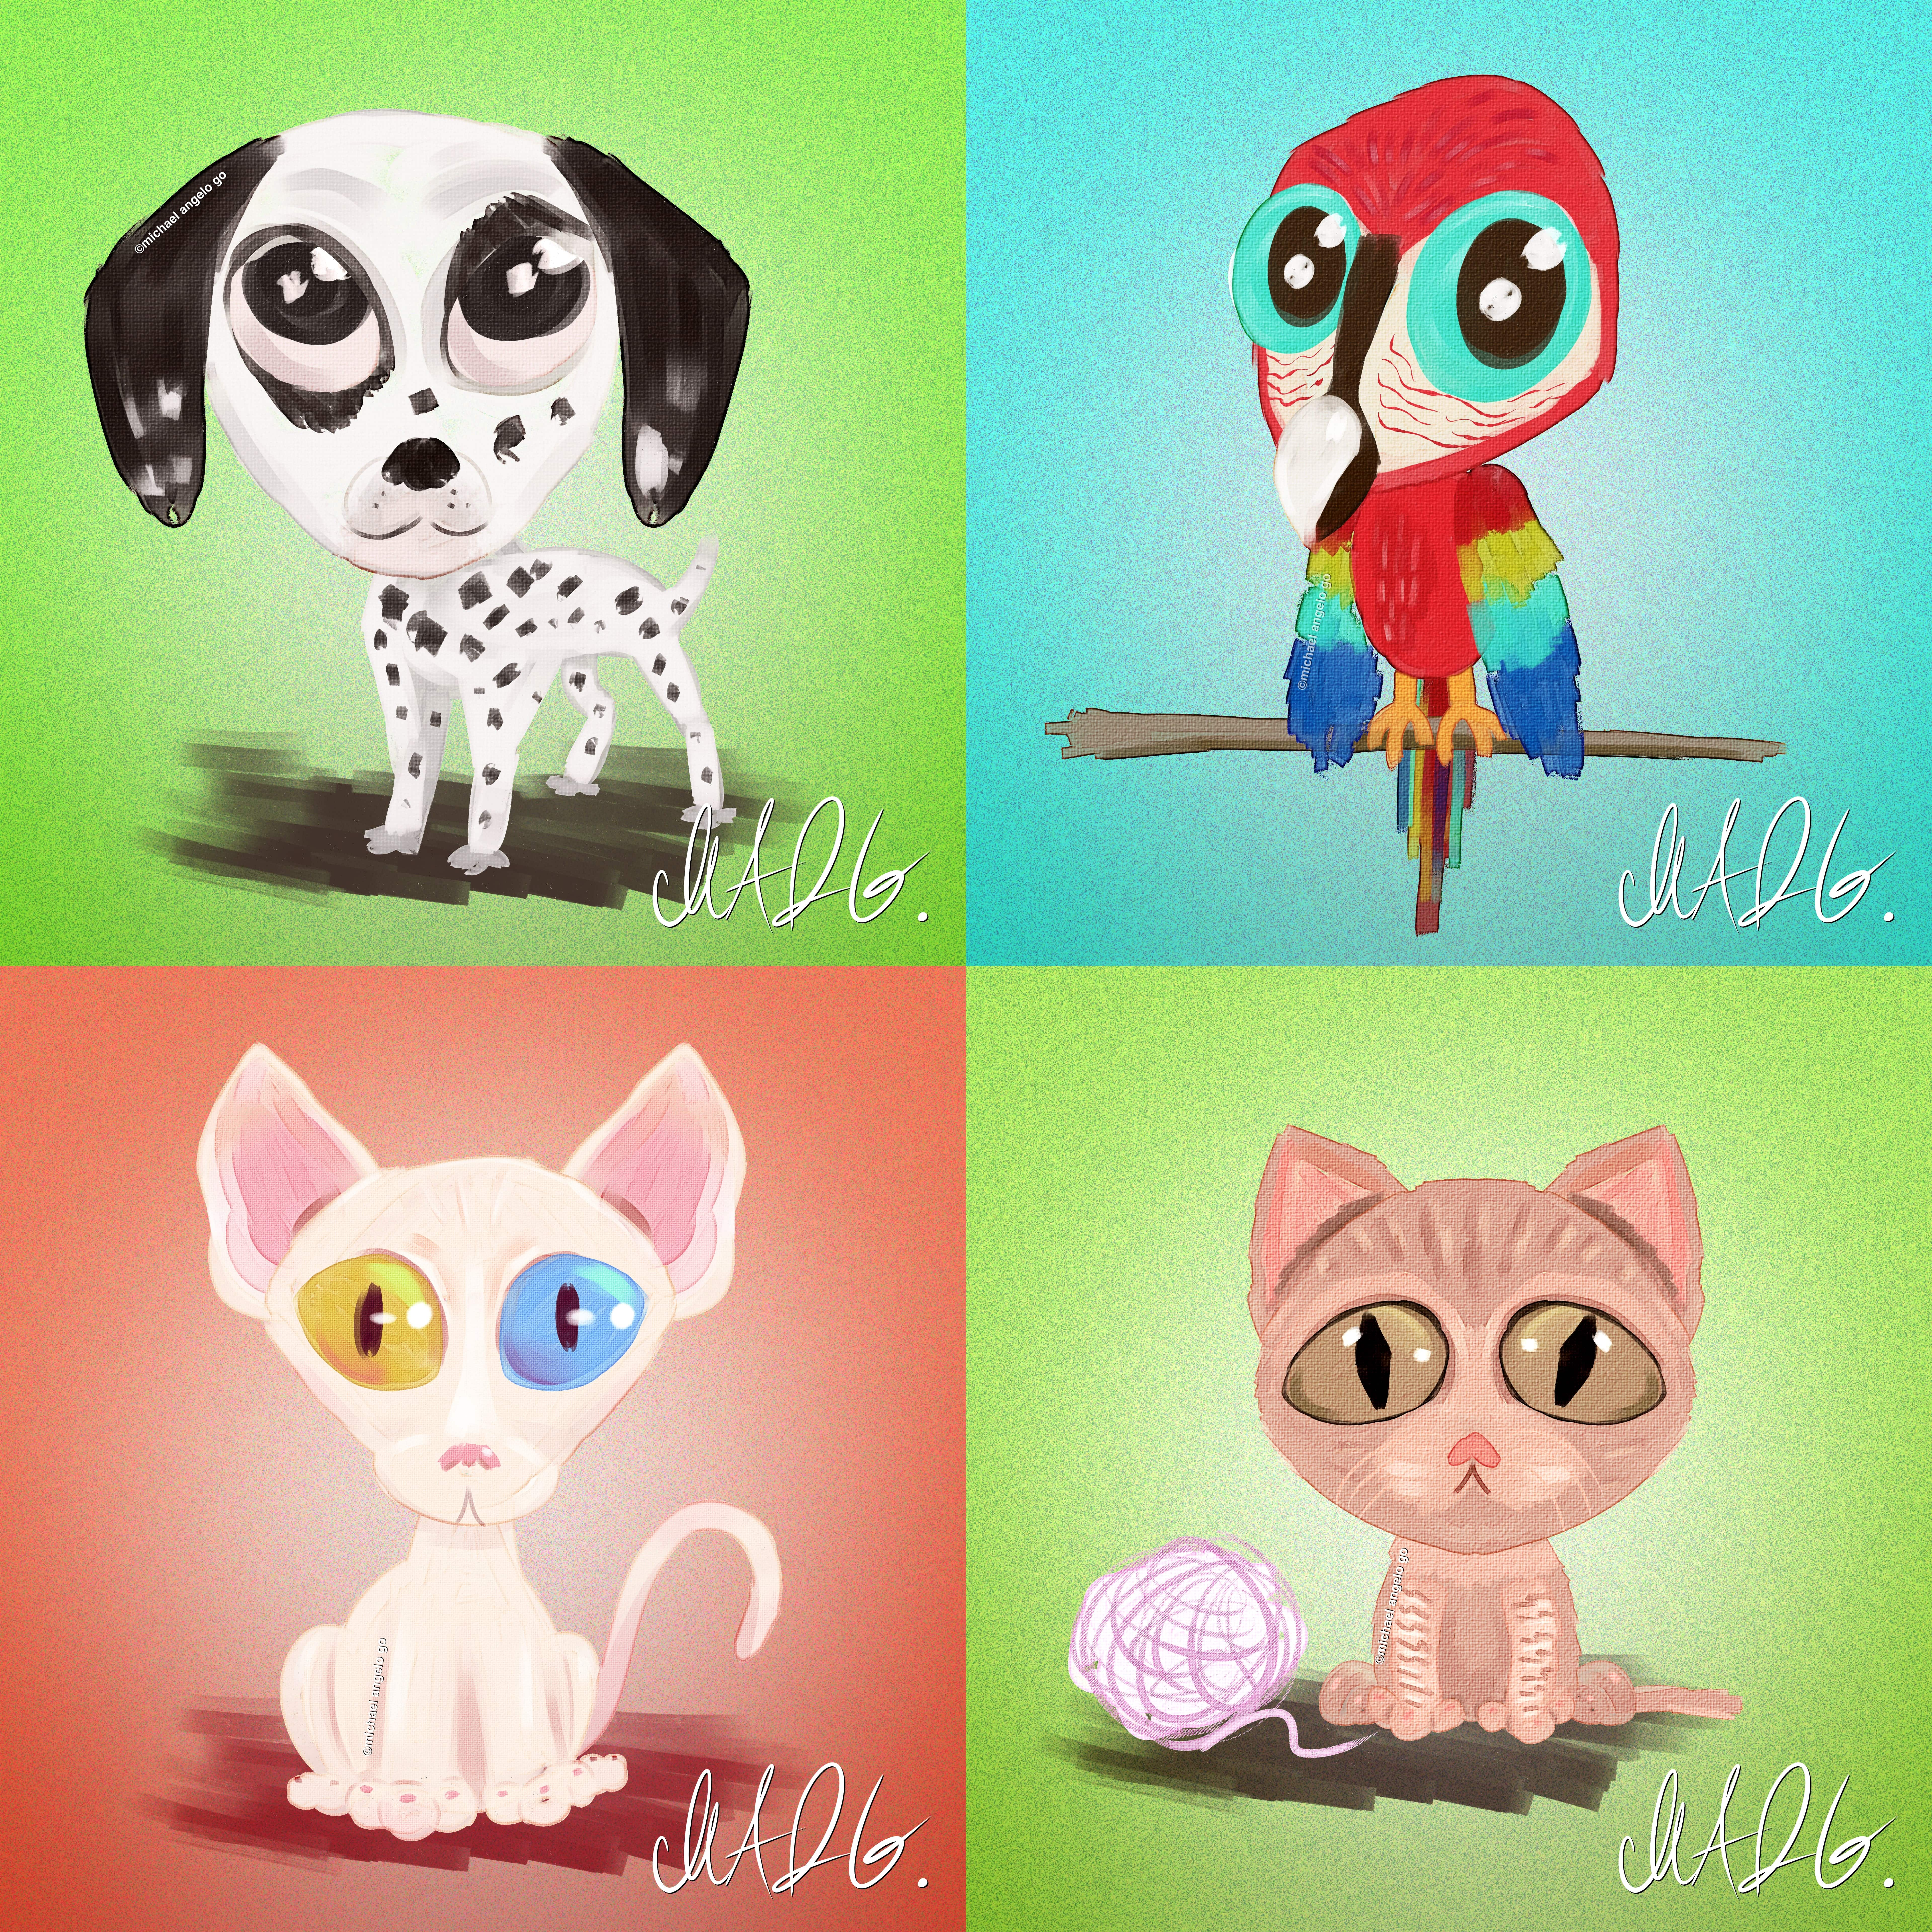 Turn Your Pets Into Cute, Adorable Cartoon Caricature Portraits On Etsy!